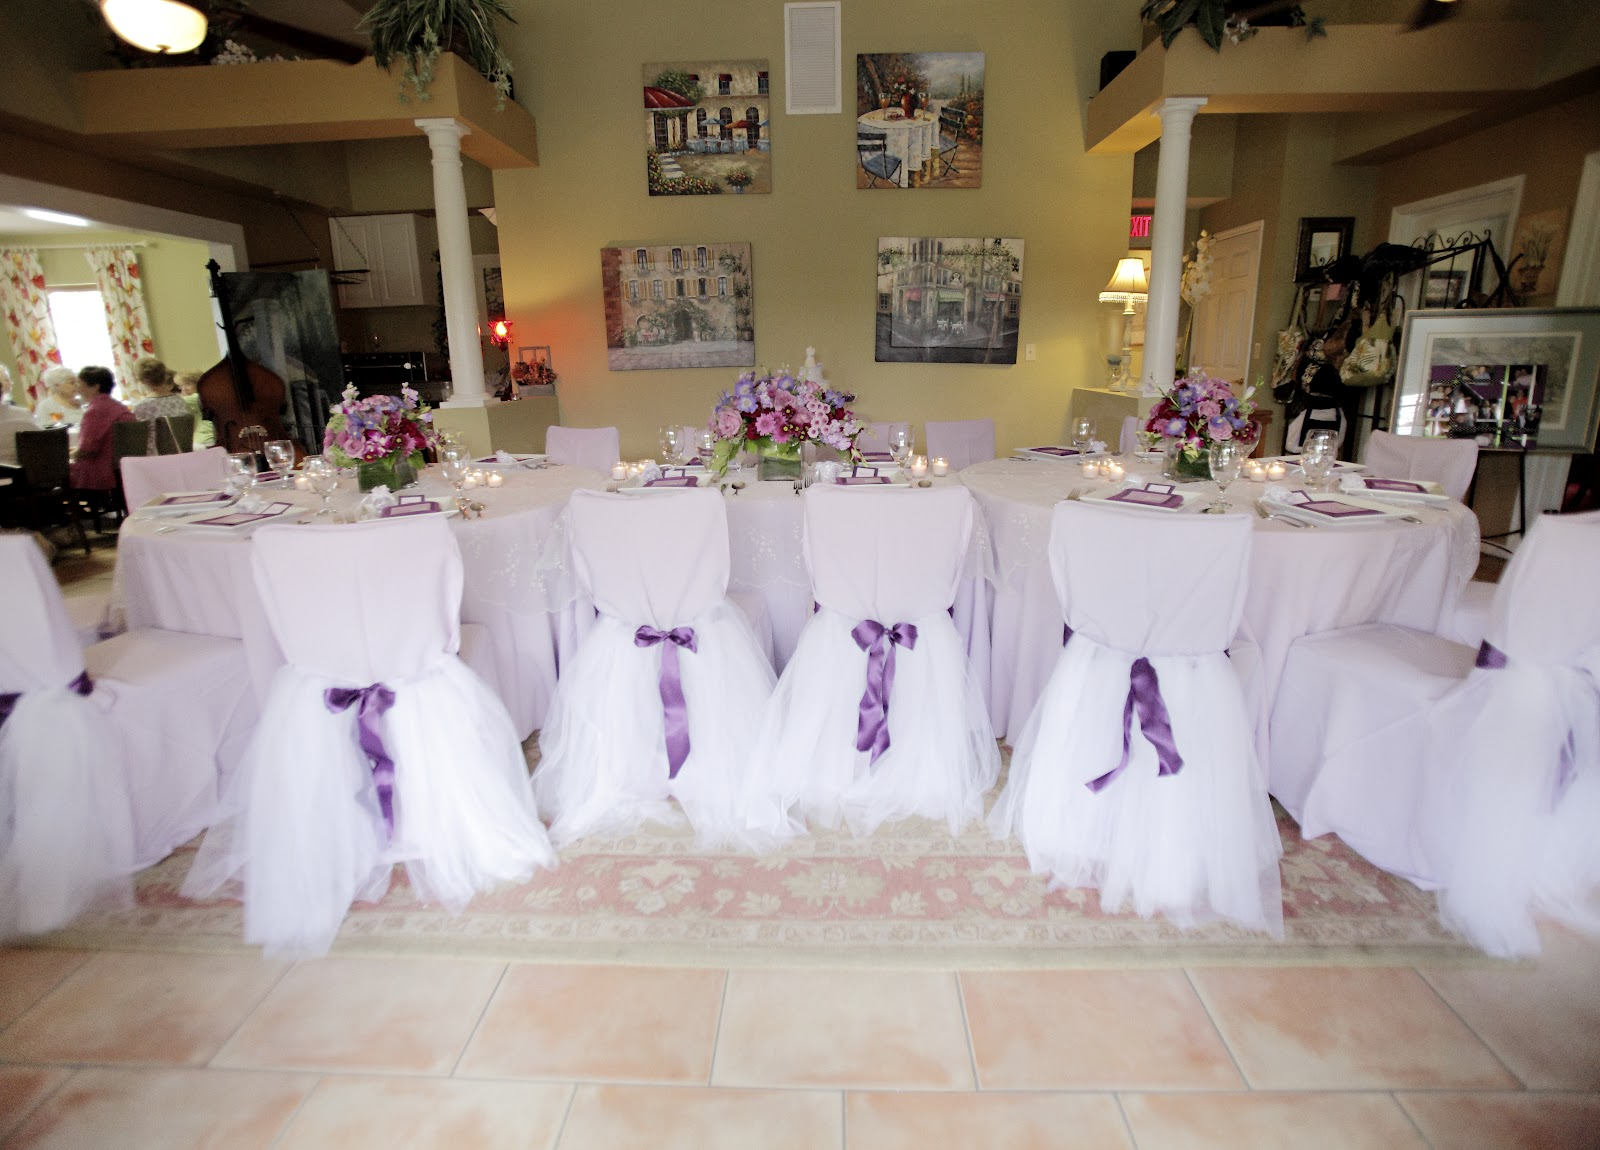 Tidbits on Weddings by Destination Planner & Designer ...